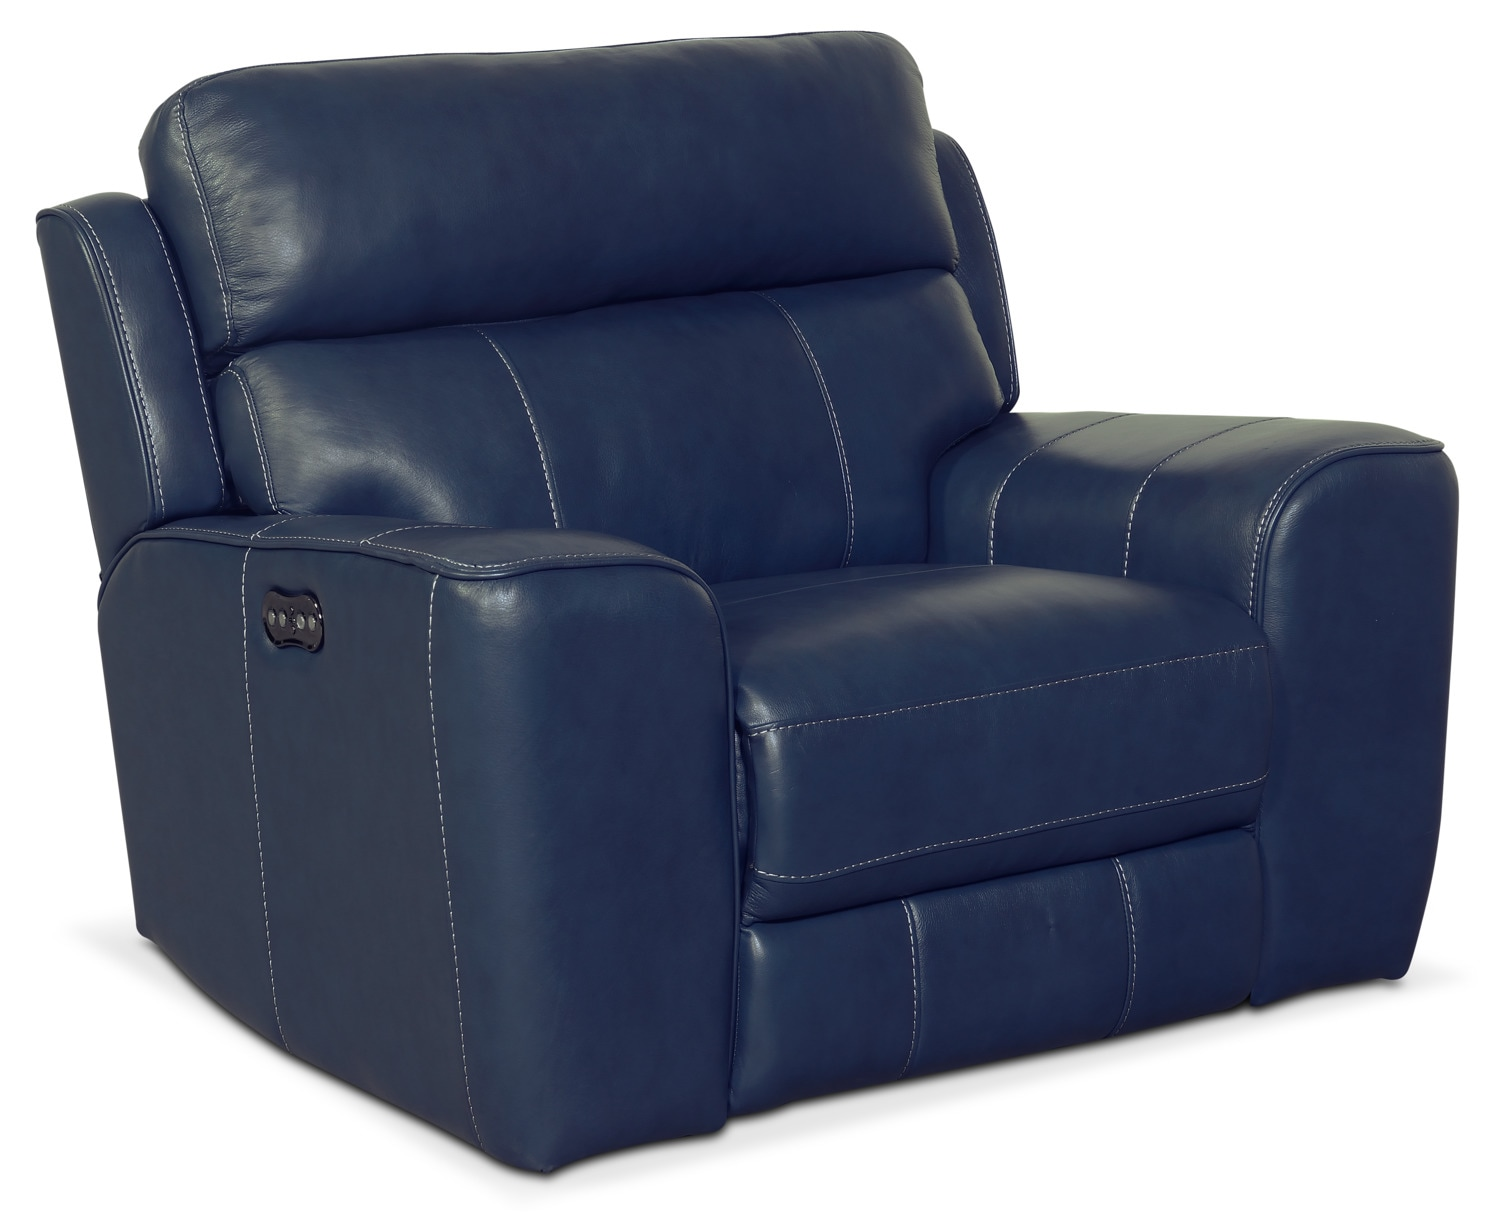 Newport Power Recliner Blue Value City Furniture And